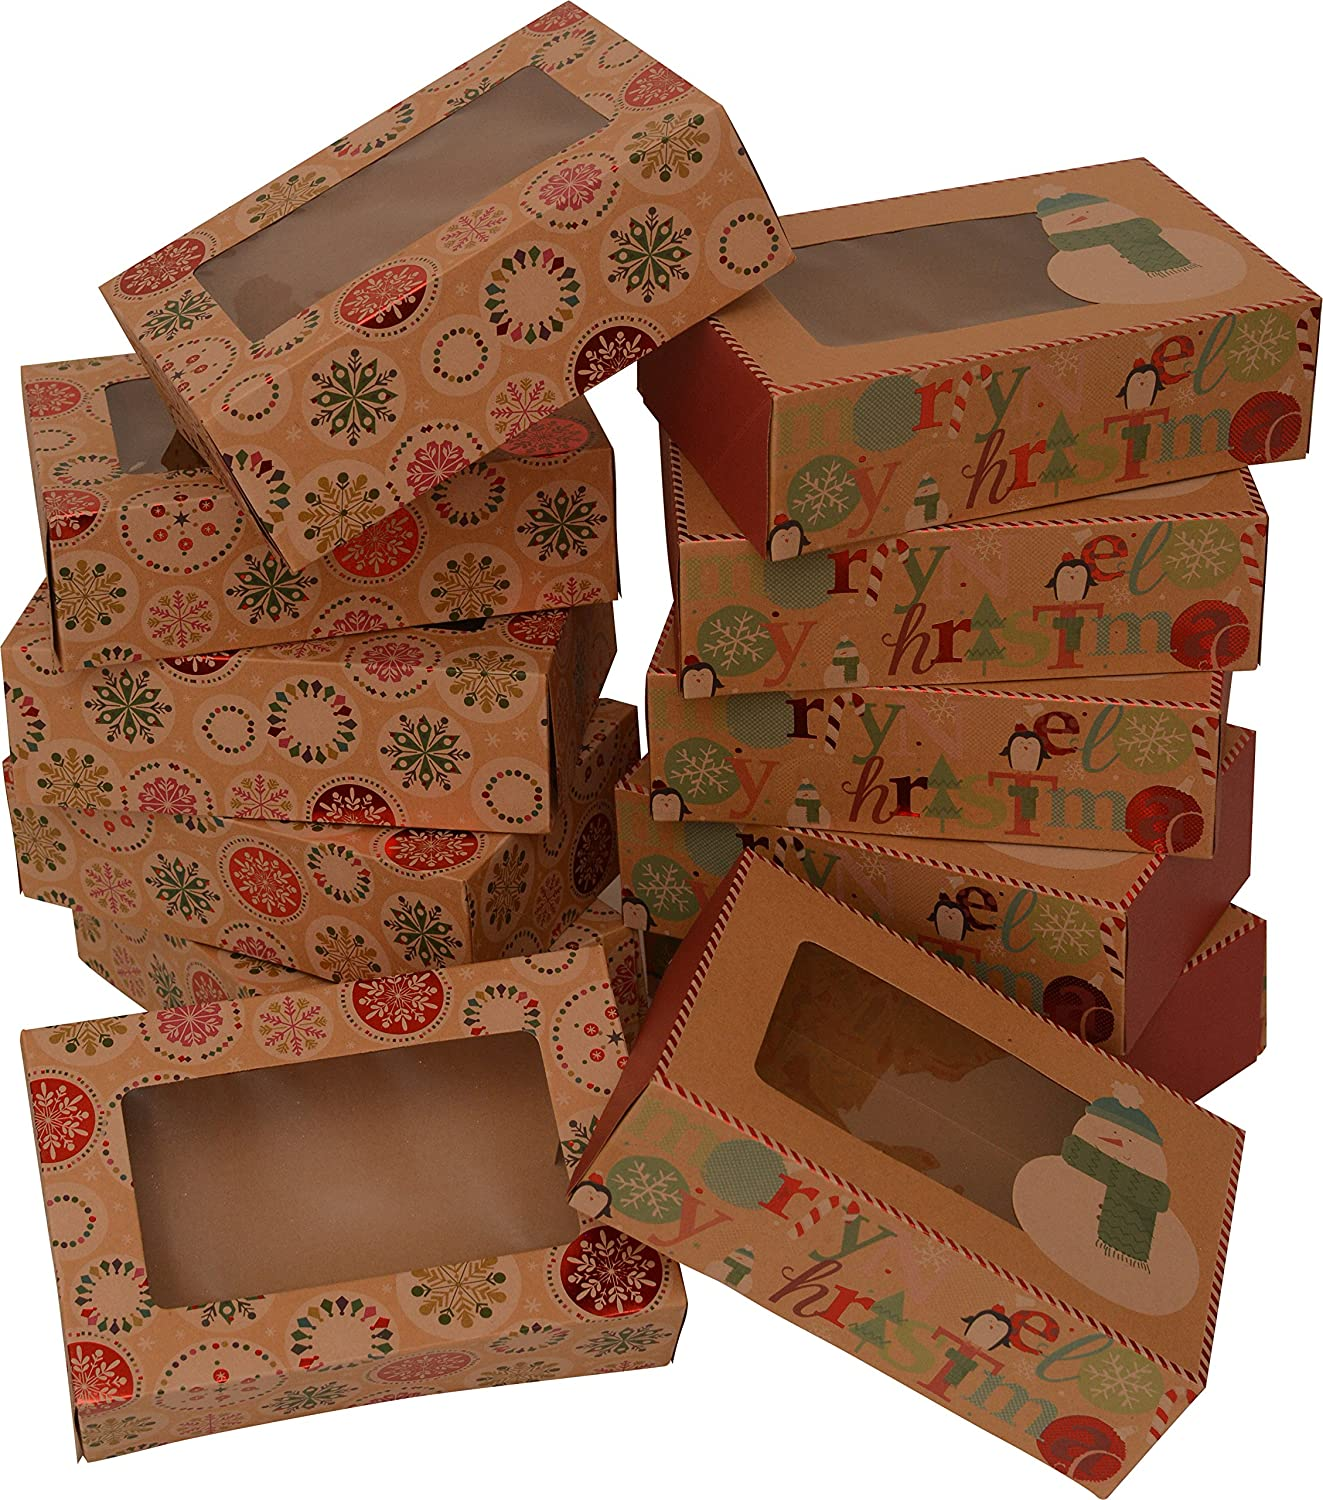 "Christmas Doughnut and Cookie gift boxes; rectangle with clear window; brown kraft with hot stamp Christmas designs; 6 of each print; set of 12 boxes (12 x 3.75 x 2.75) (12, 8.6"" x 6"" x 2.75"")"